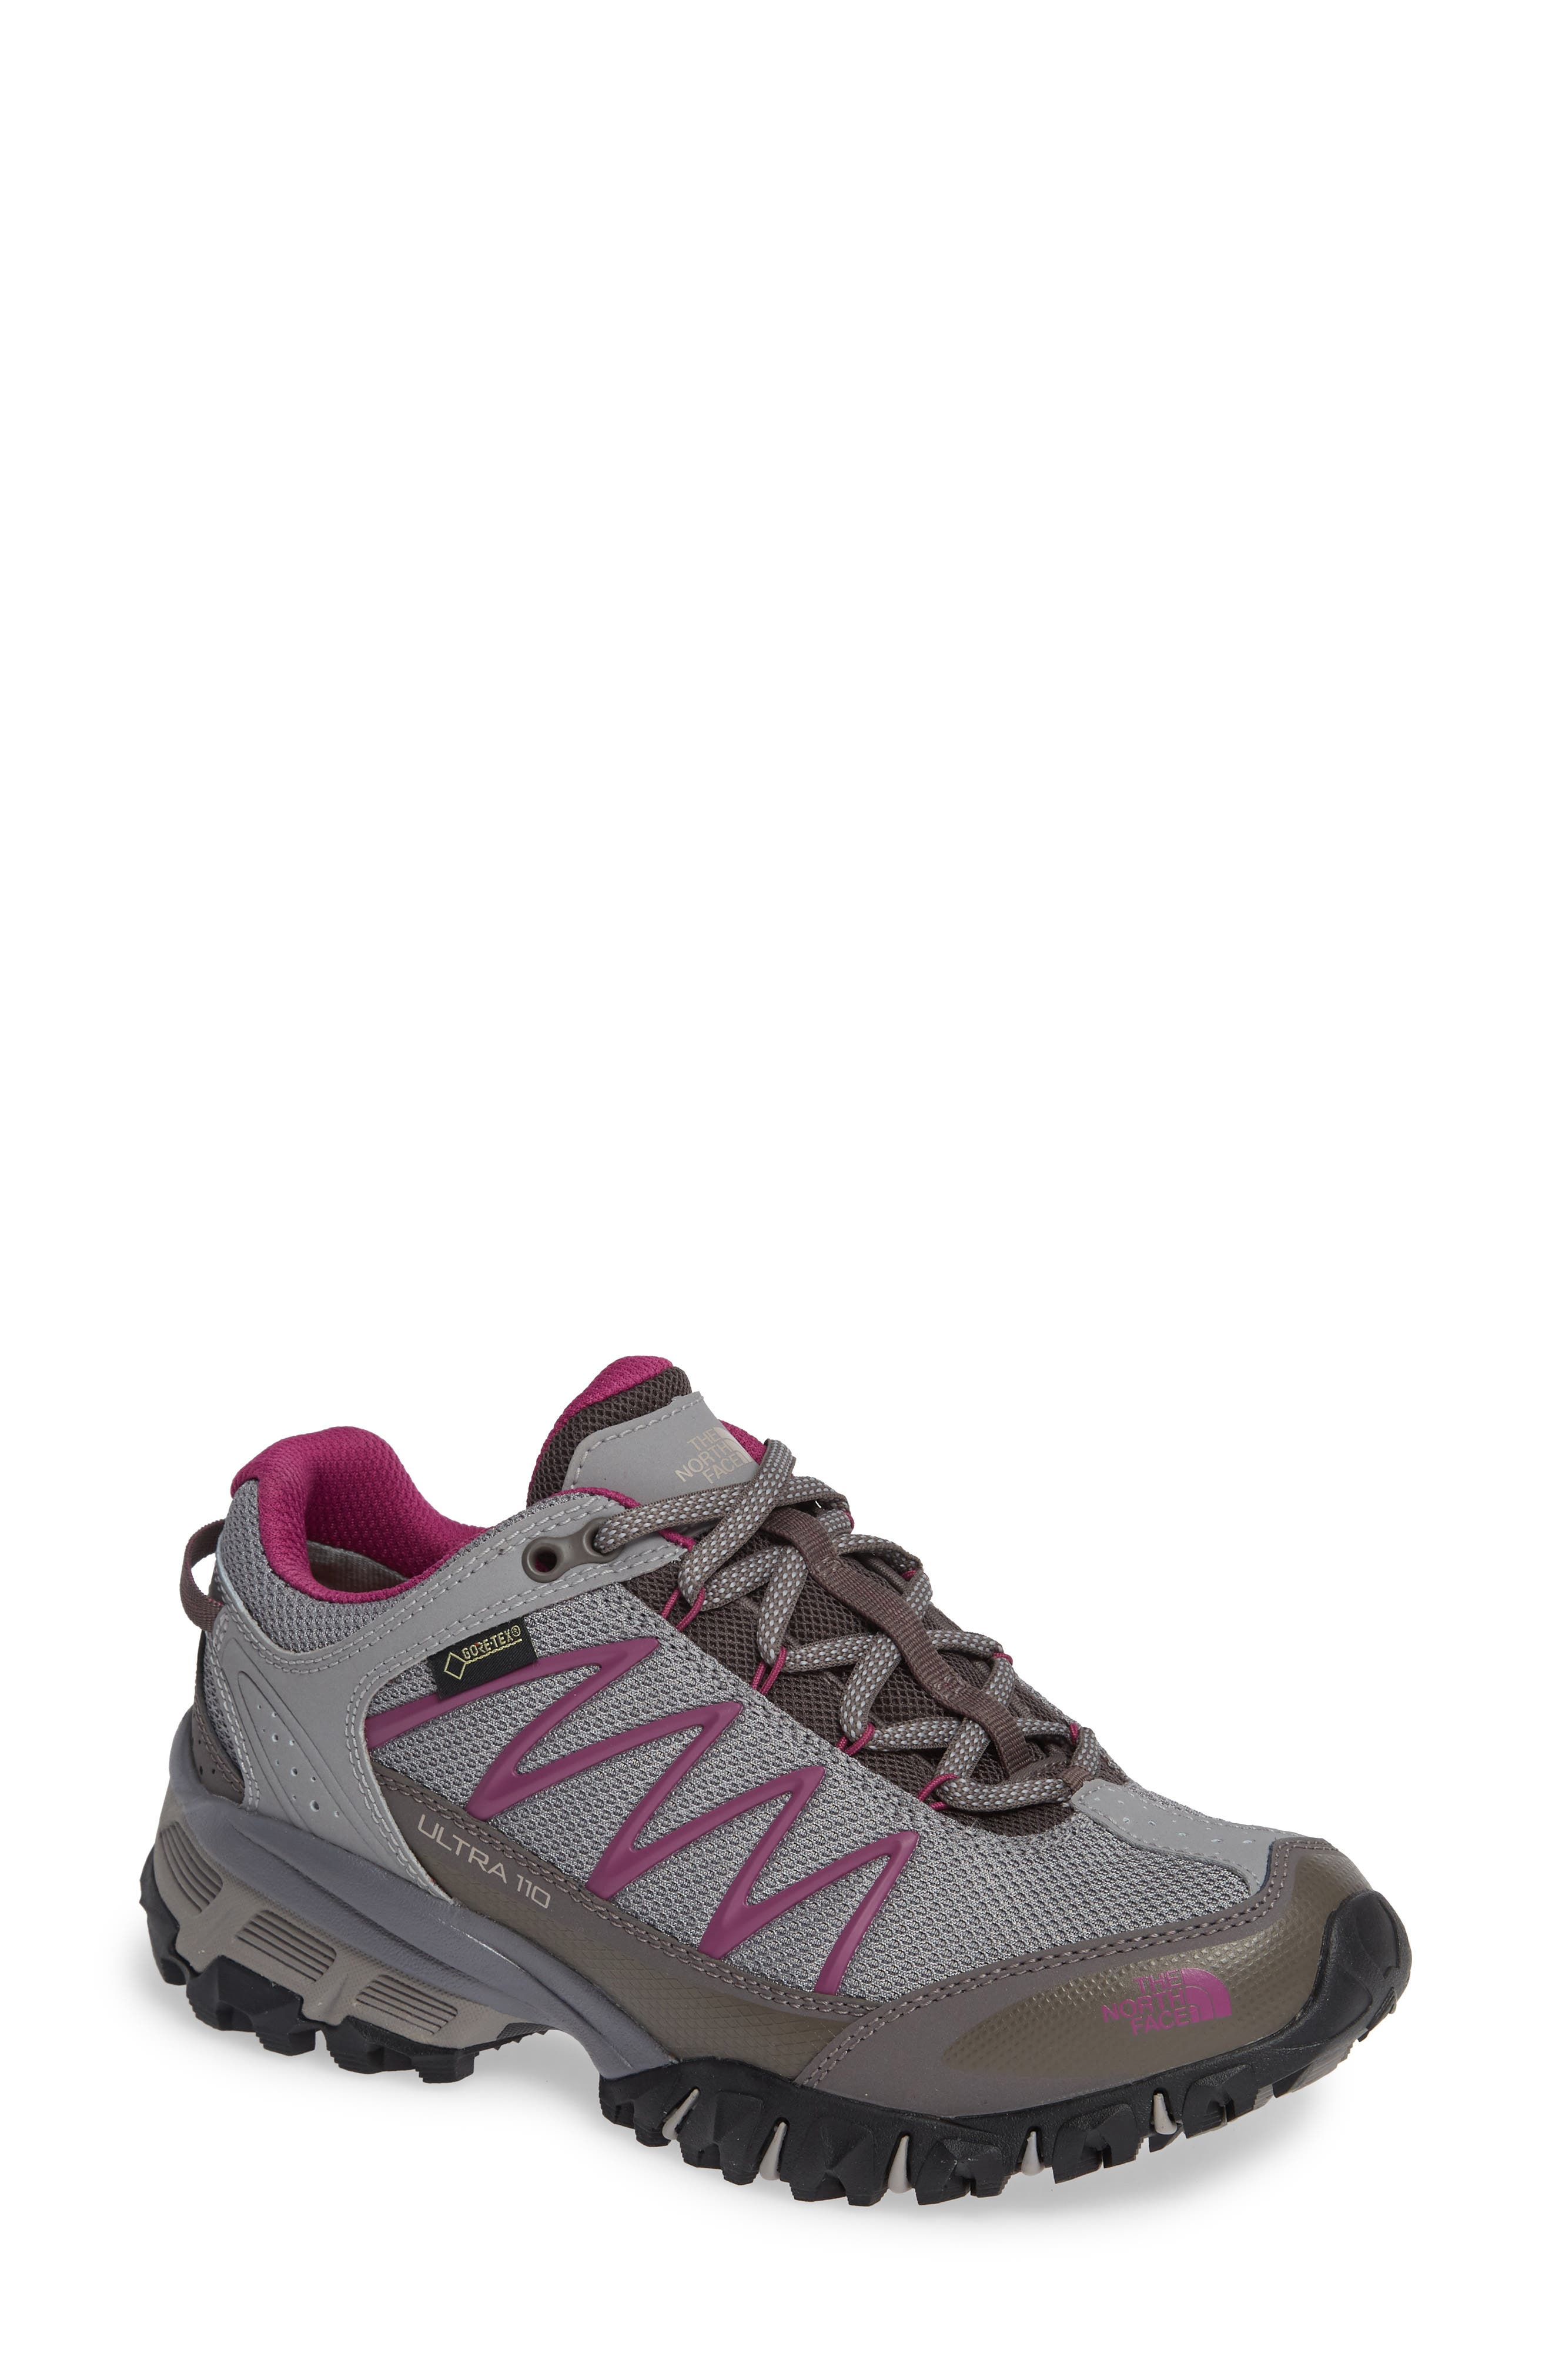 Ultra 110 GTX<sup>®</sup> Hiking Shoe,                         Main,                         color, Q-SILVER GREY/ ASTER PURPLE